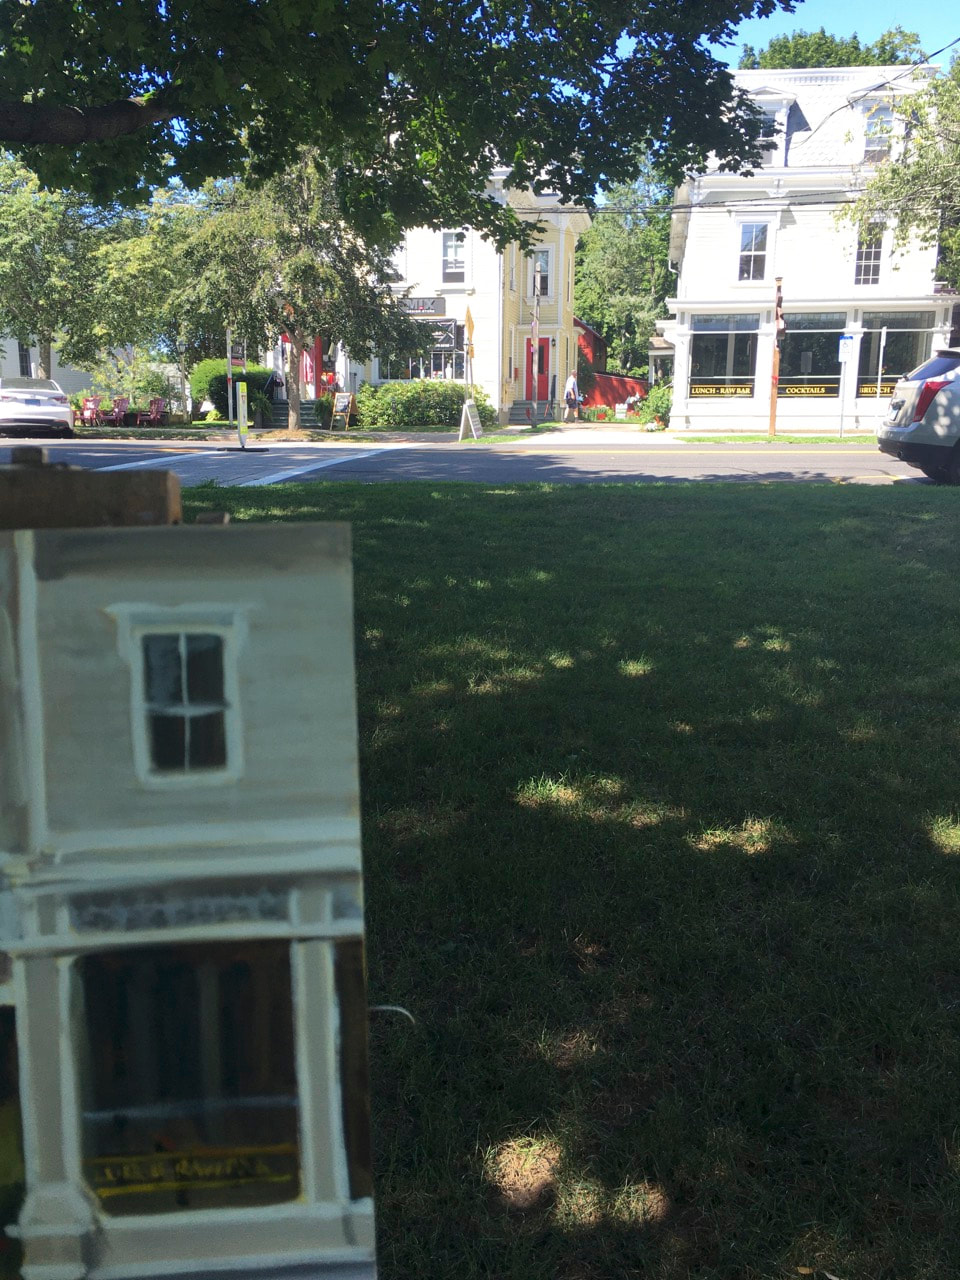 Linda Marino's Easel set up on the Guilford Green in Guilford, Ct